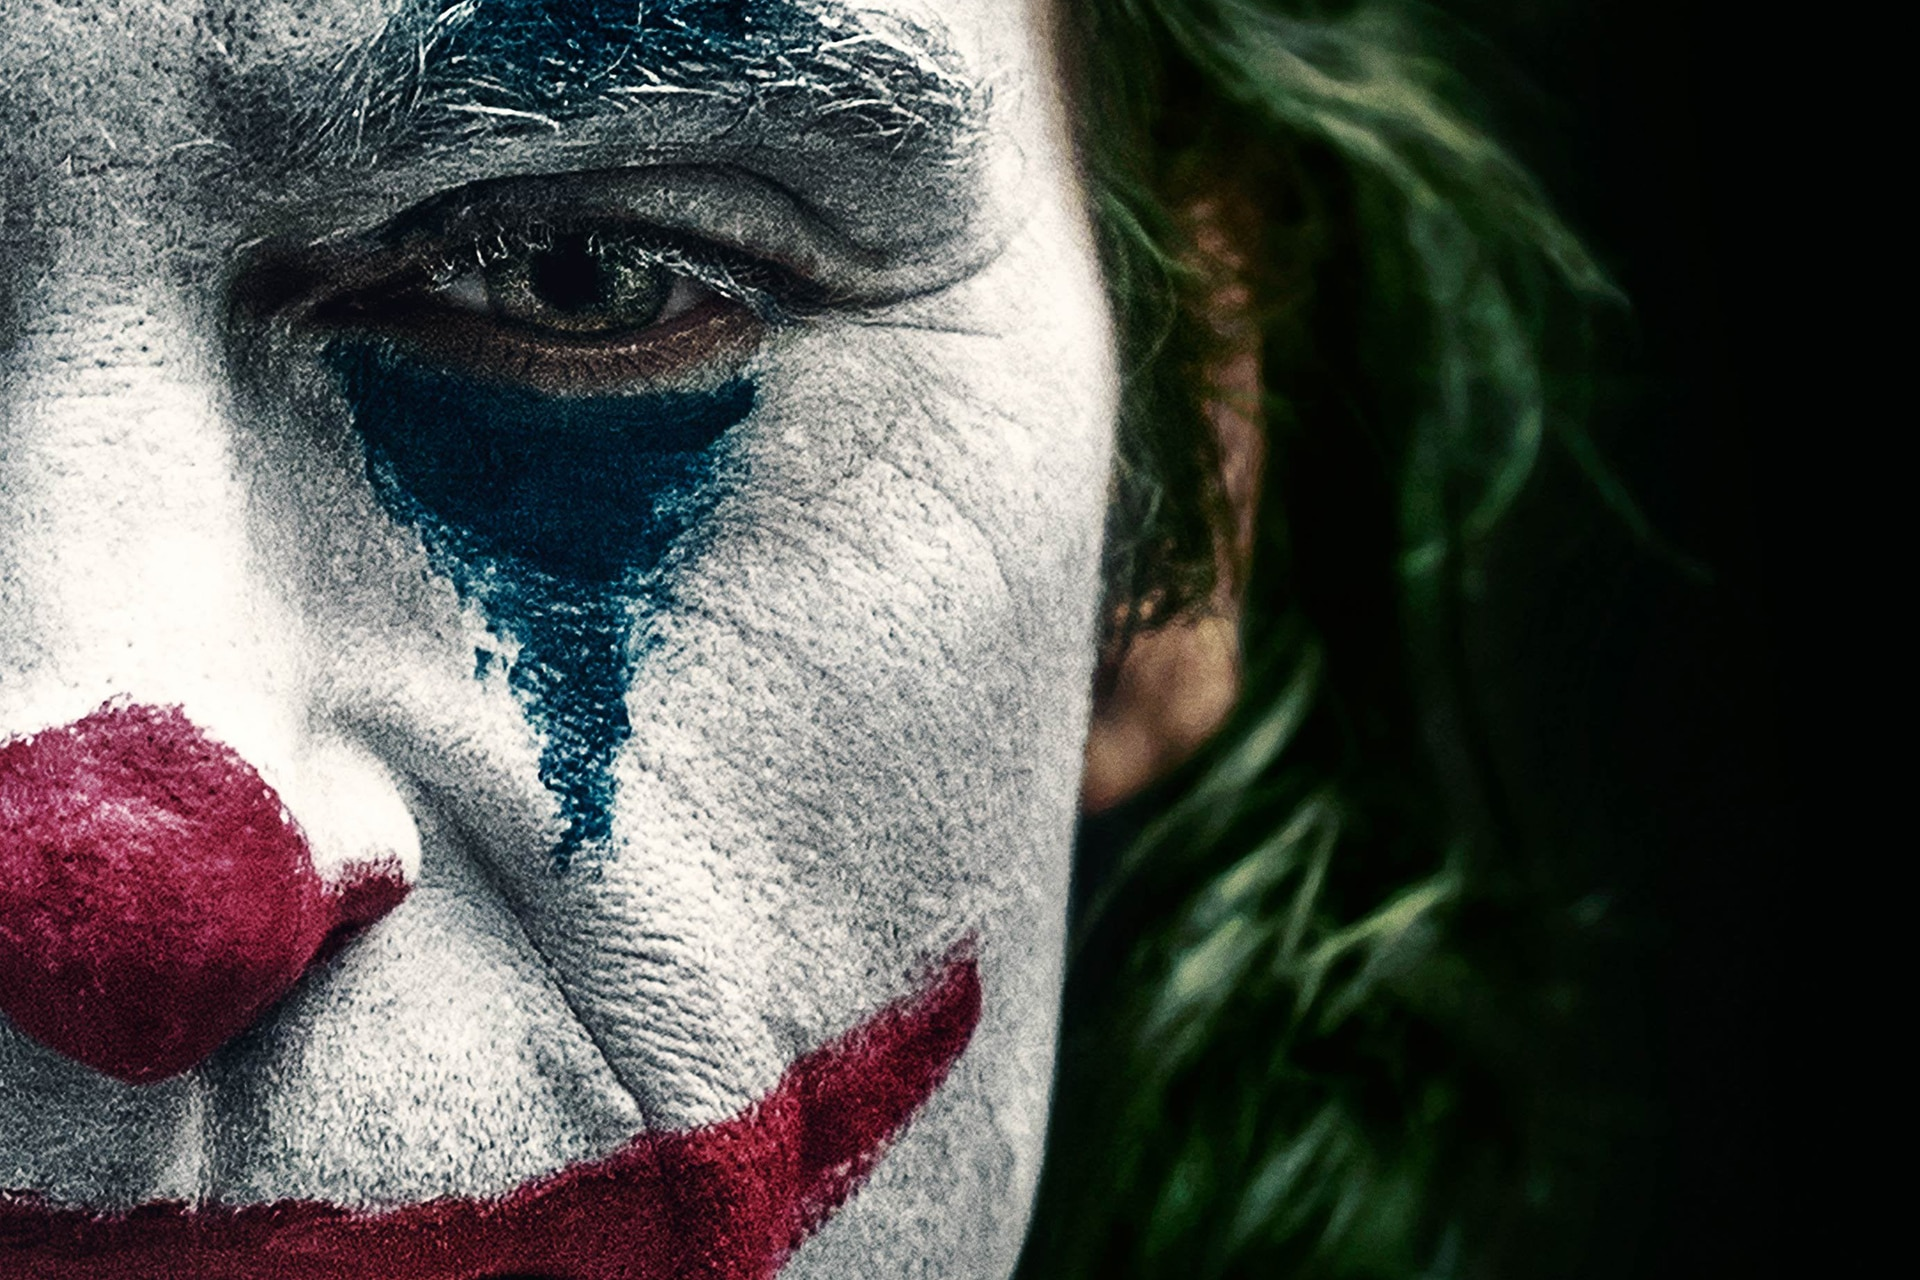 With Joaquin Phoenix S Joker Hailed As A Problematic